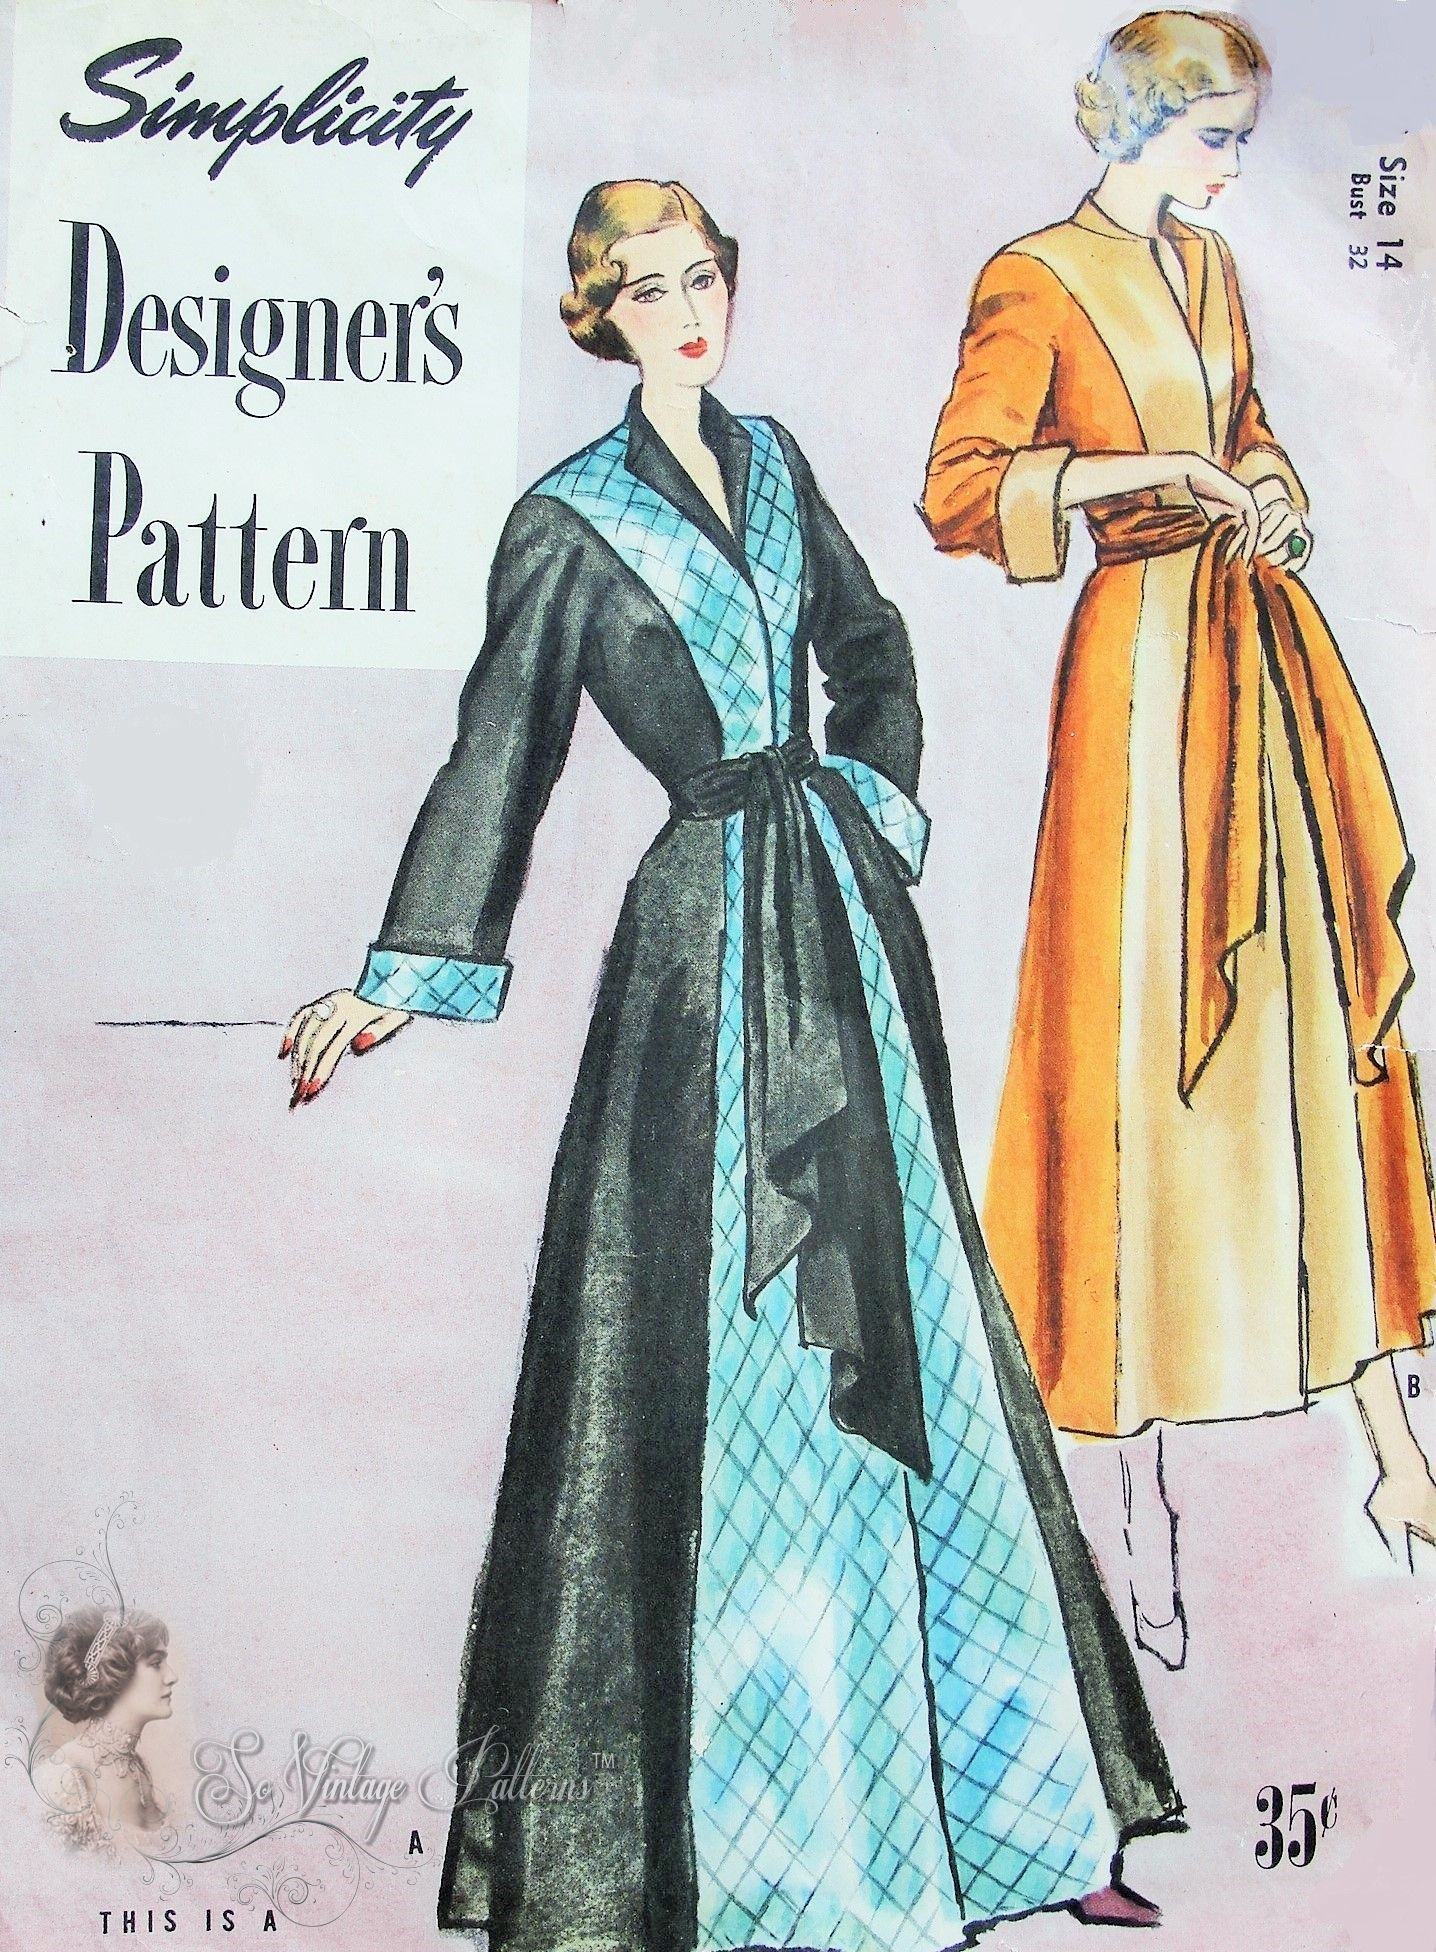 1940s Lovely Negligee Robe Hostess Gown Pattern Two Tone Formal Glam House  Coat Robe So Hollywood Movie Style Simplicity Designers 8042 Vintage Sewing  ... 10d1f627d